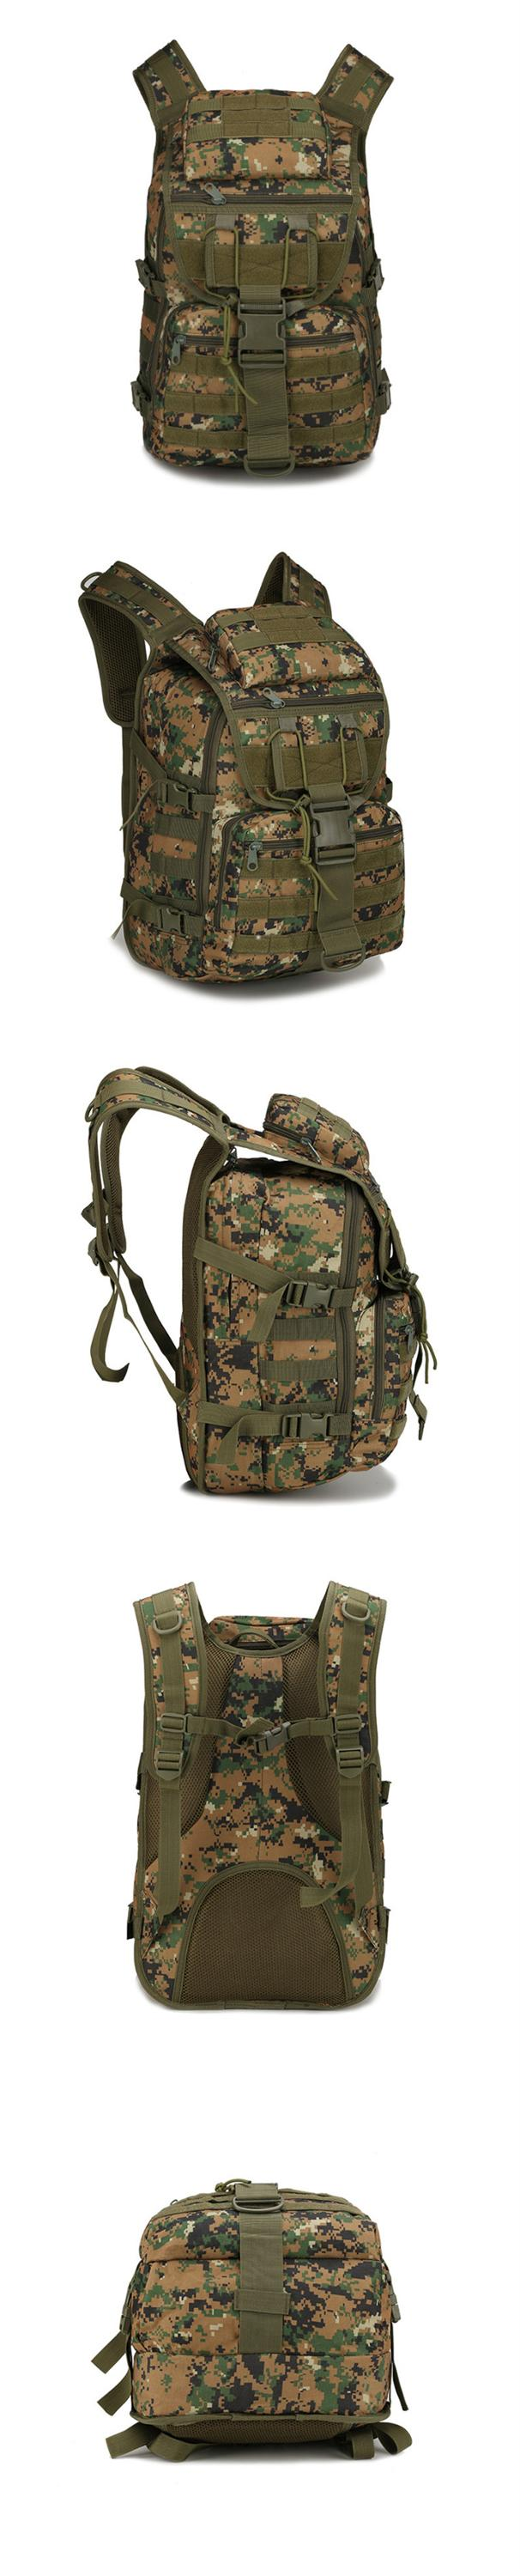 Army hunting tactical military backpack hydration pack backpacks